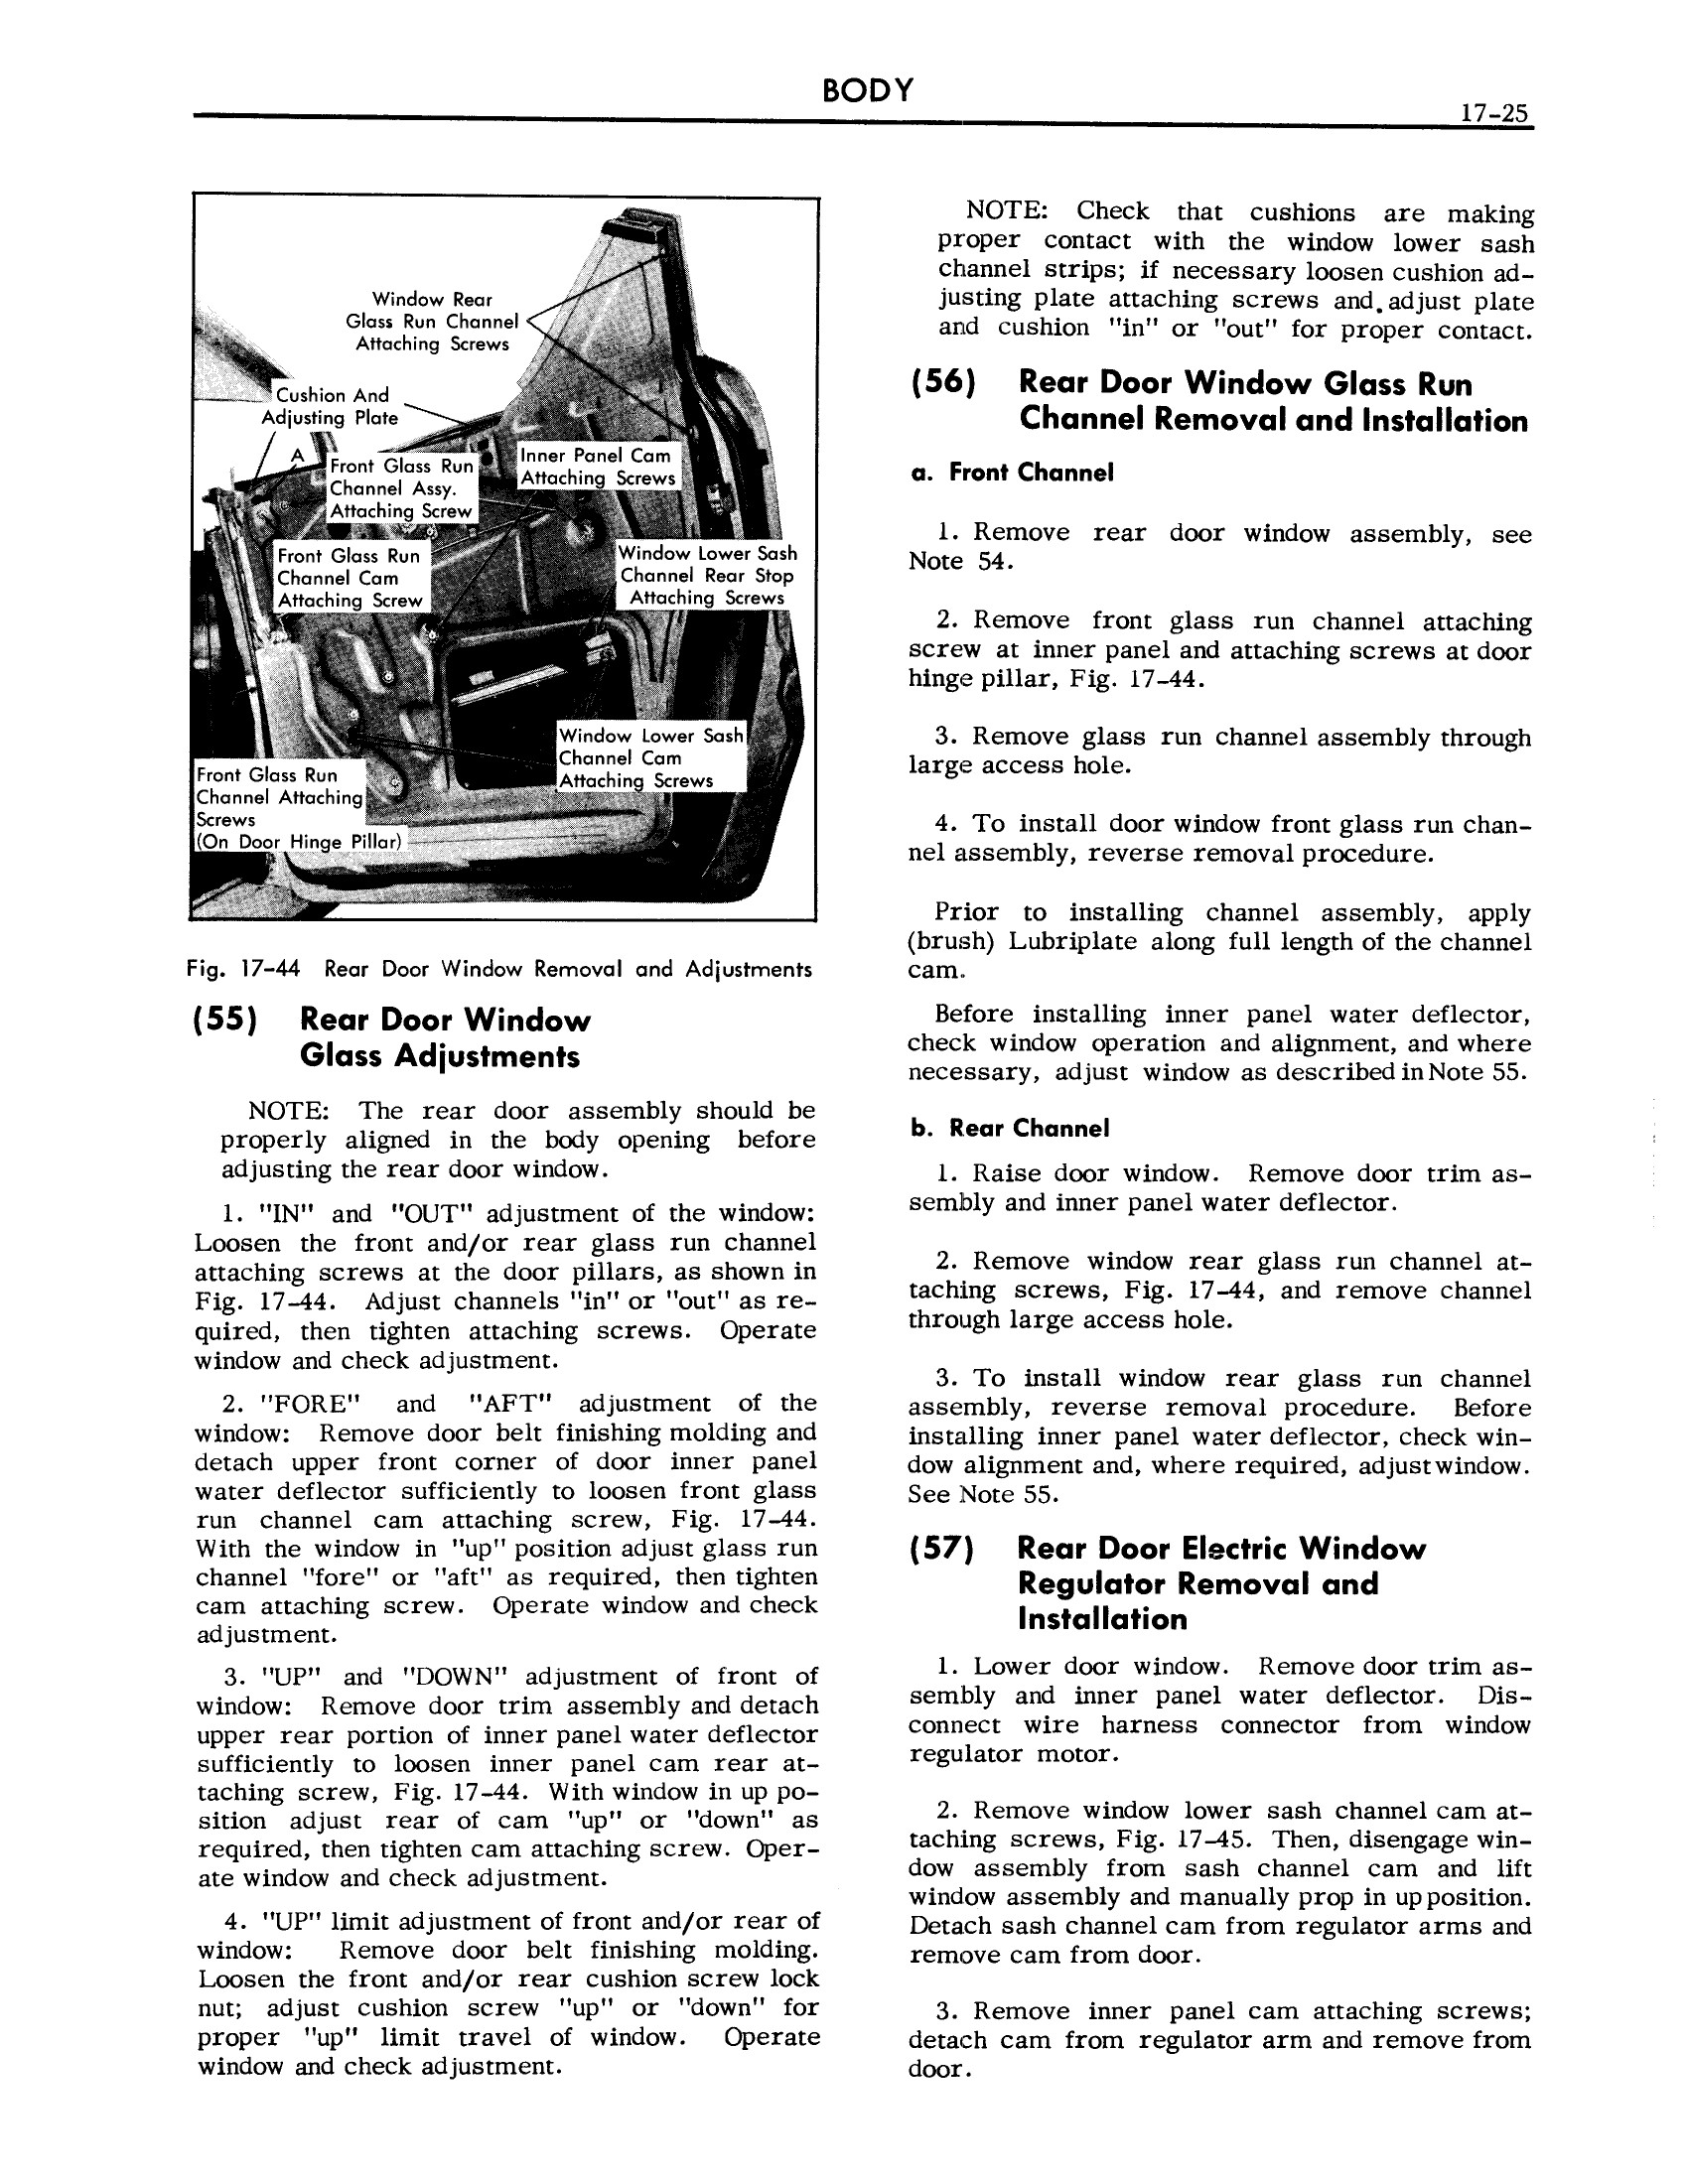 1957 Cadillac Shop Manual- Body Page 25 of 76